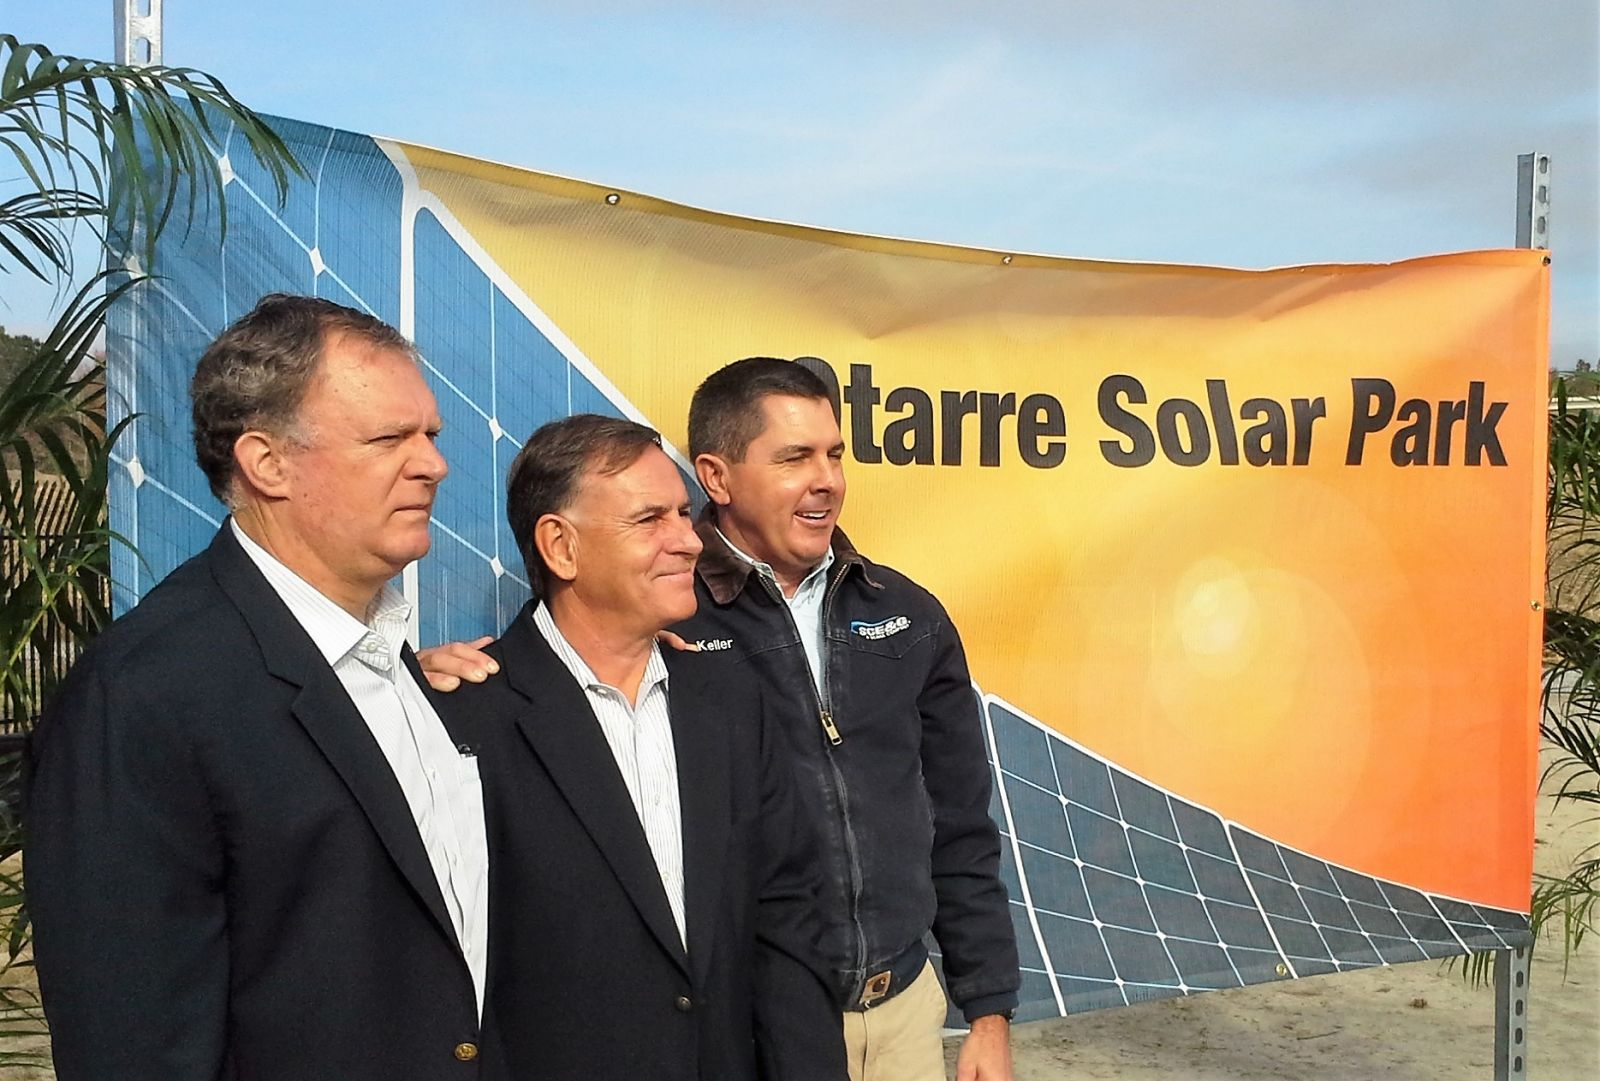 Dave McNeil (left to right), Grant Reeves and Keller Kissam at Tuesday's dedication of the Otarre Solar Park in Cayce. (Photo/Travis Boland)